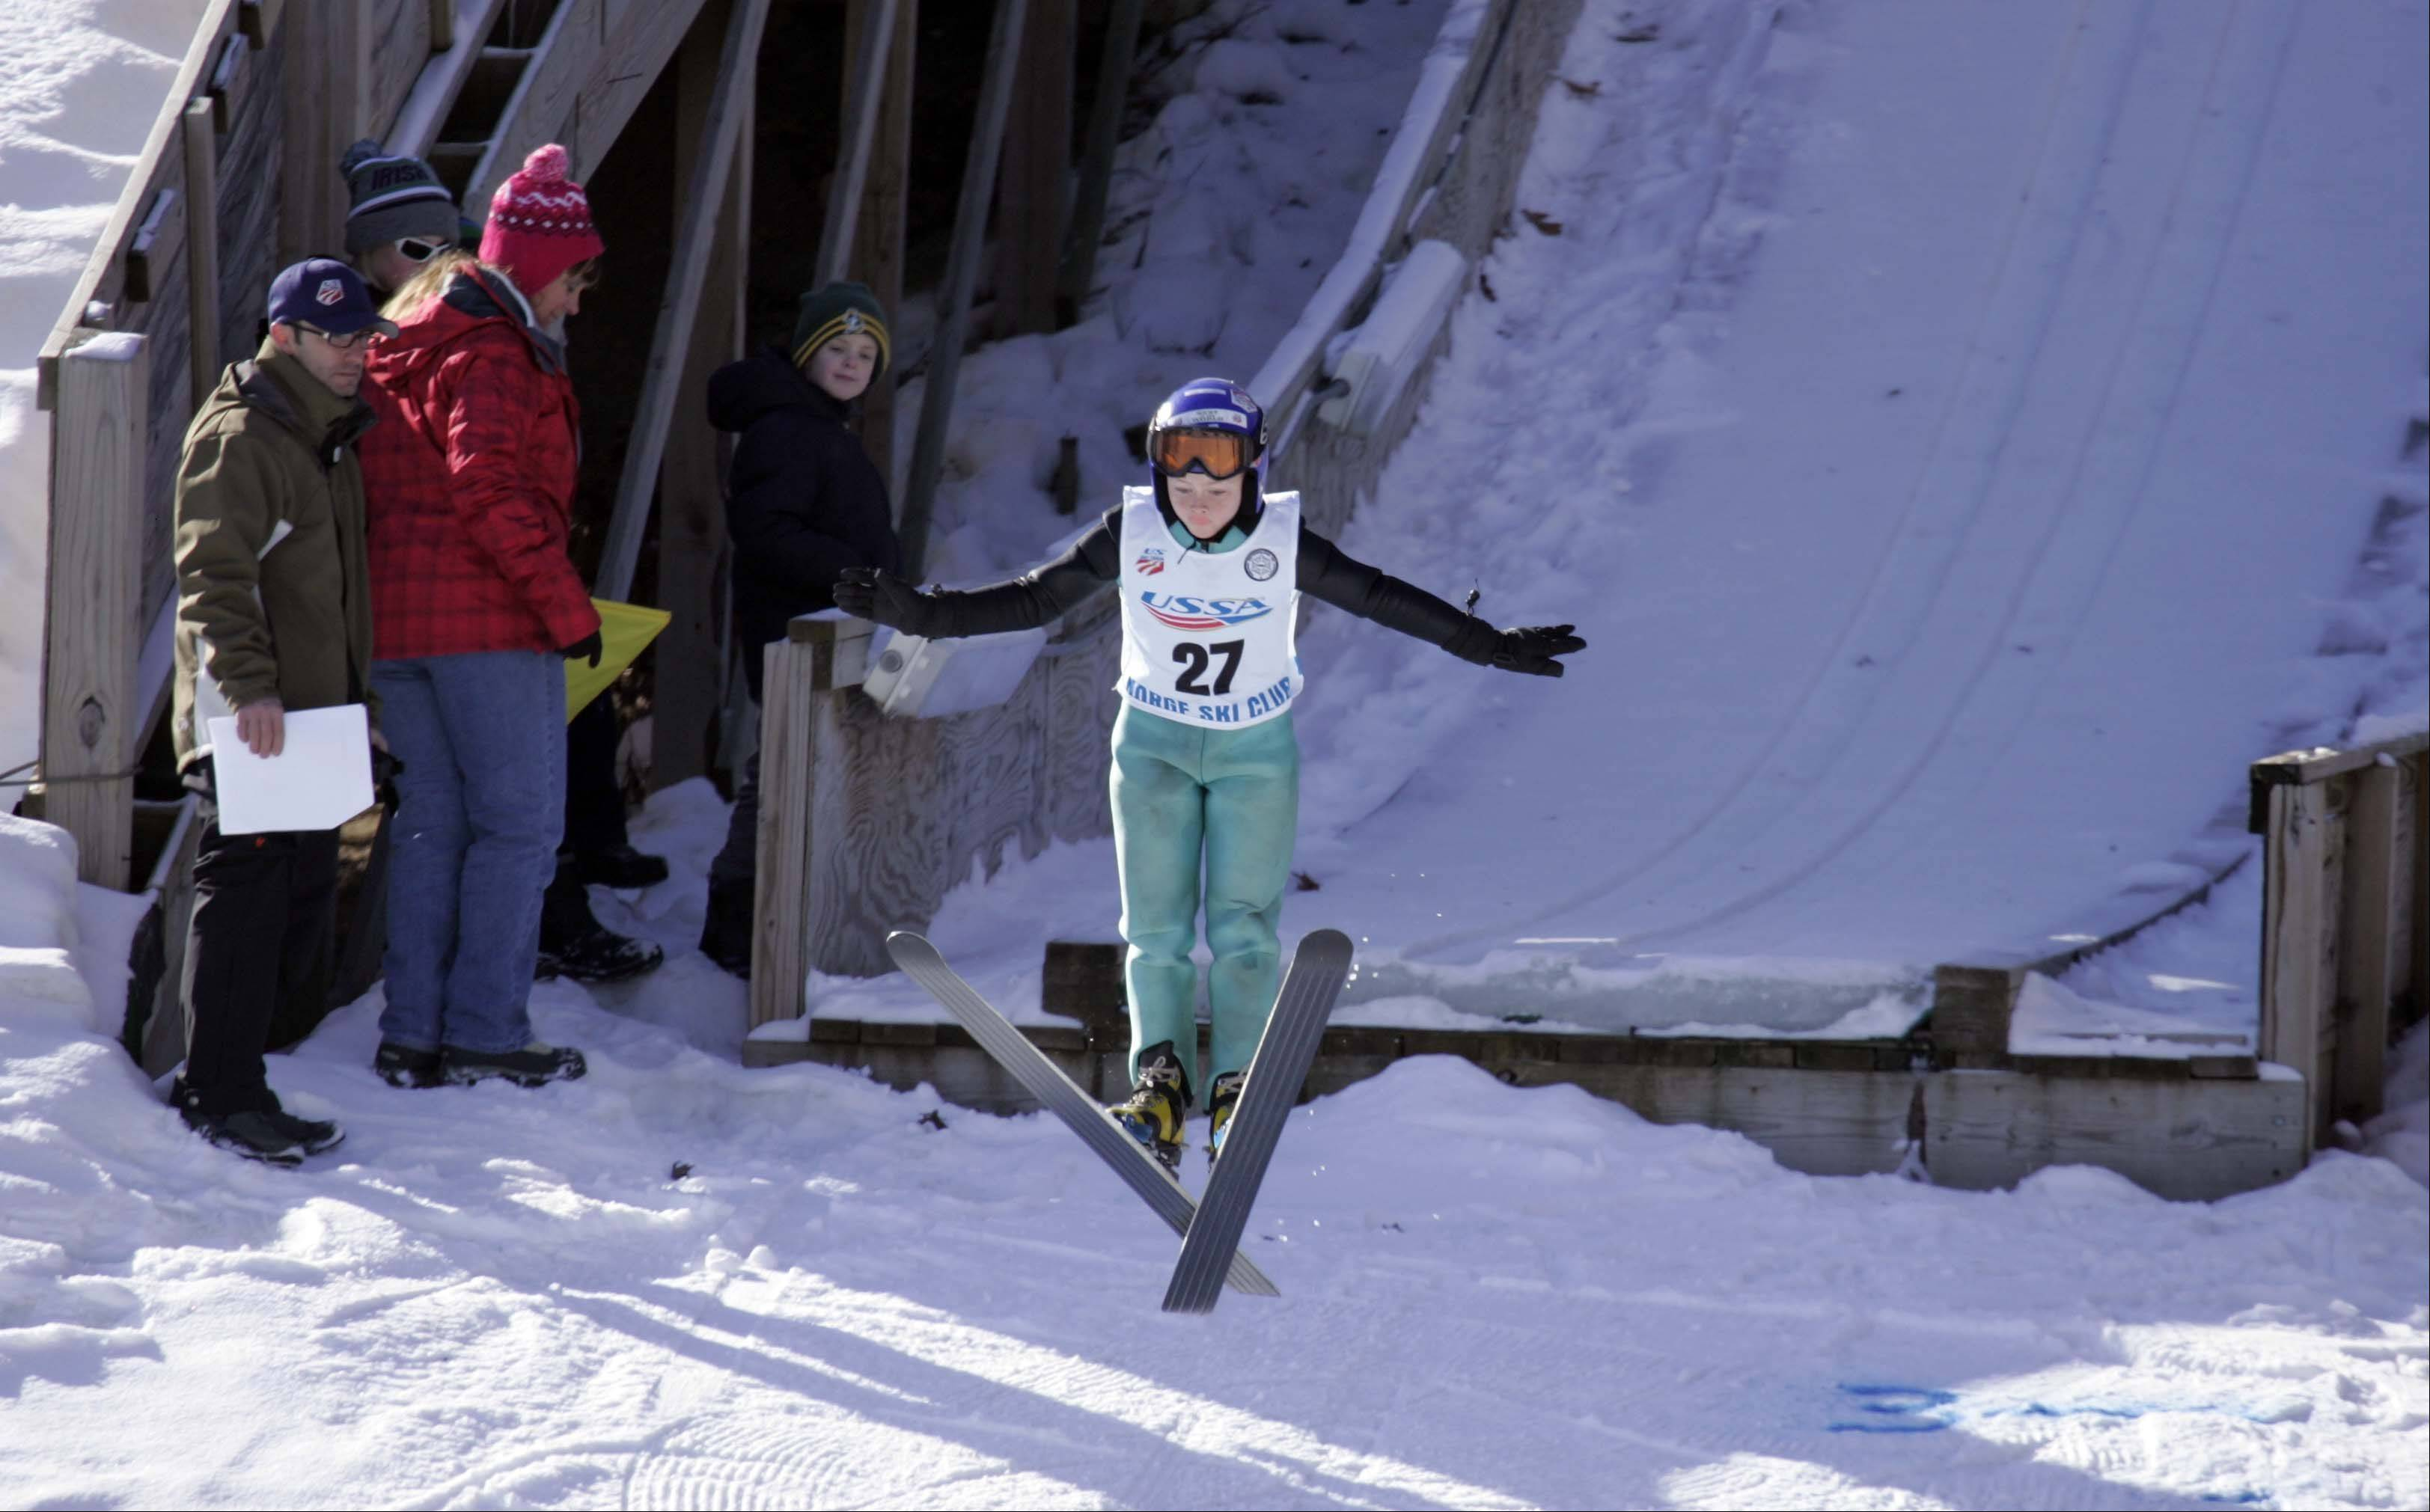 Matthew Smith of the Norge Ski club launches himself off the ramp during the 108th annual Norge International Ski Jumping Tournament Saturday at the Norge Ski Club in Fox River Grove. The junior competition and junior national championship qualifier K70 was Saturday. The K70 U.S. Cup Five Hills Tournament and the Long-Standing Competition are today.